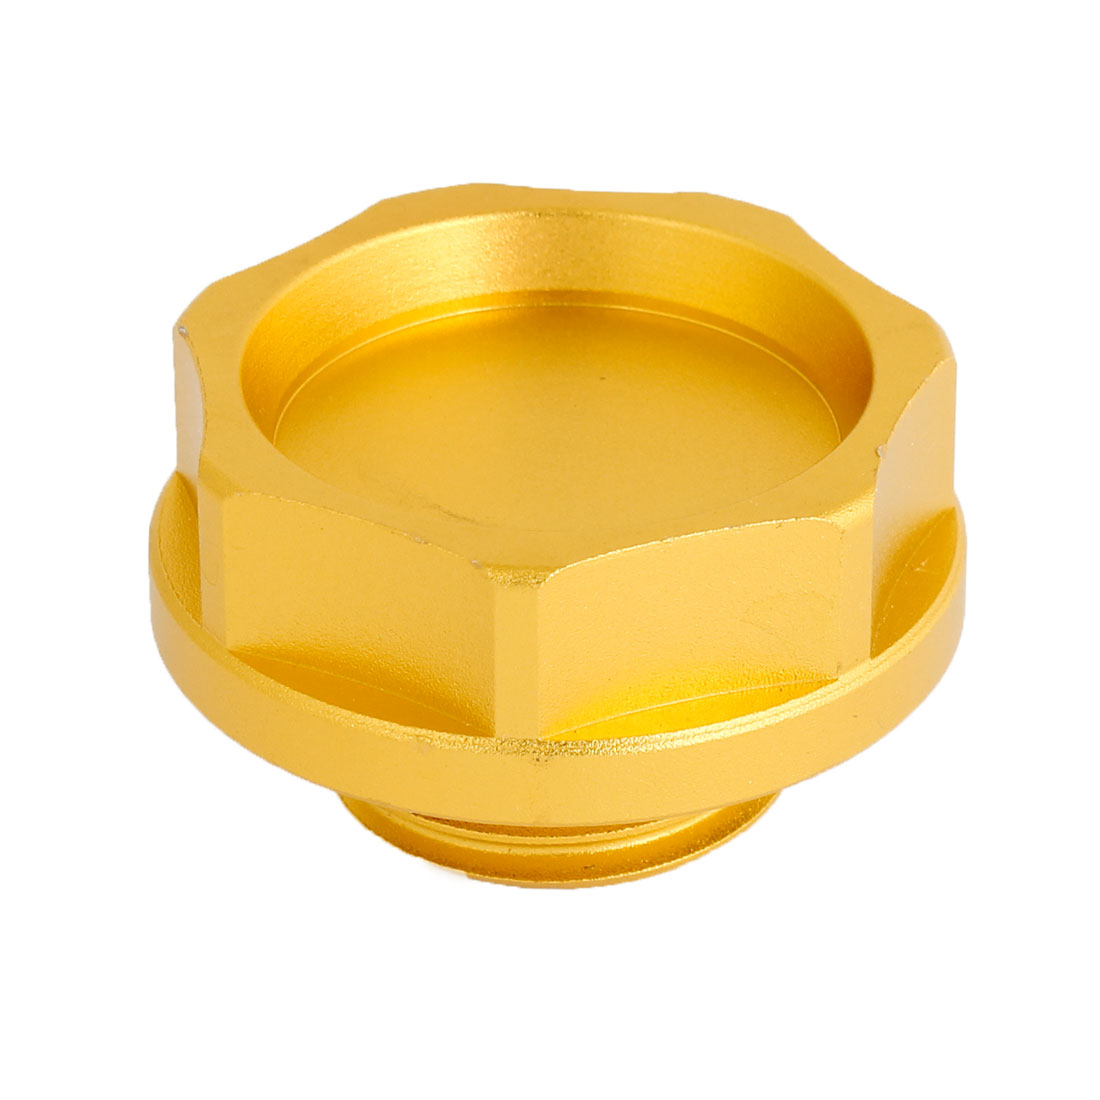 Car Modified Parts Gold Tone 33mm Screw Dia Engine Oil Filler Cover Cap for Toyota